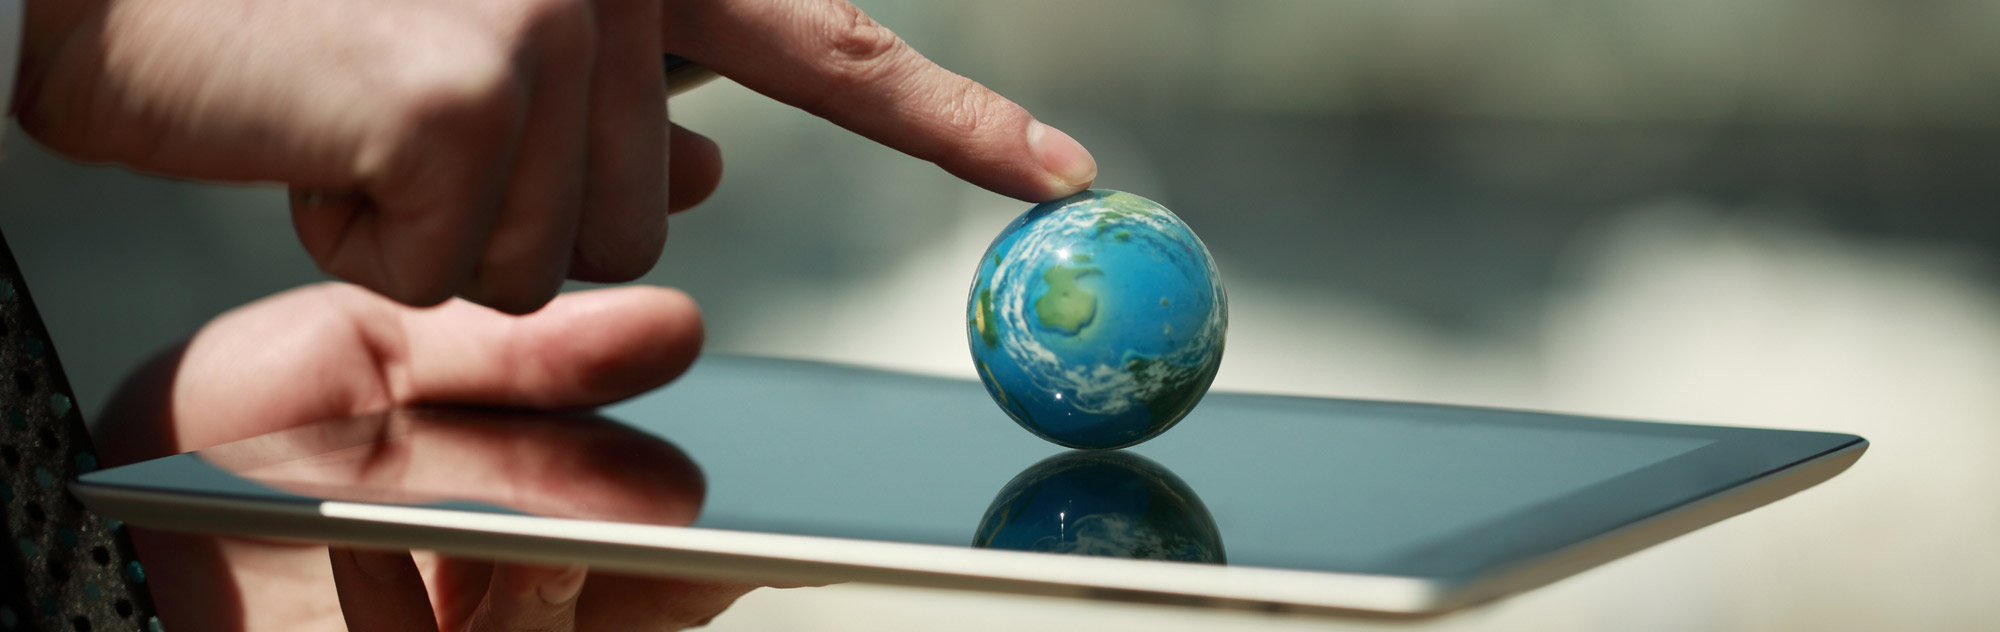 A finger pointing to a small globe on top of a tablet